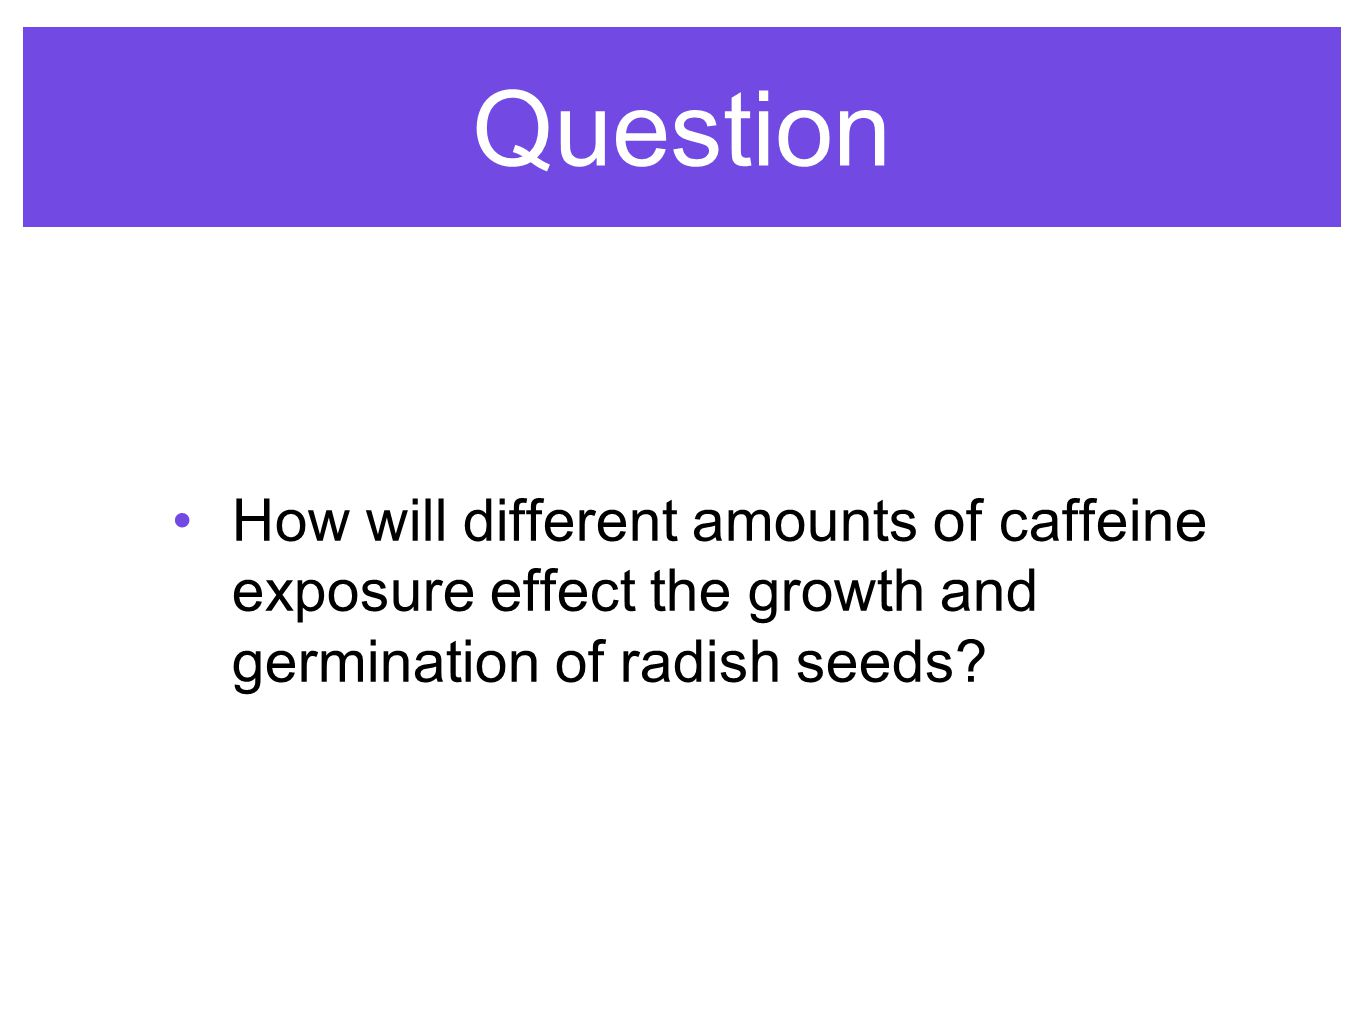 Question How will different amounts of caffeine exposure effect the growth and germination of radish seeds